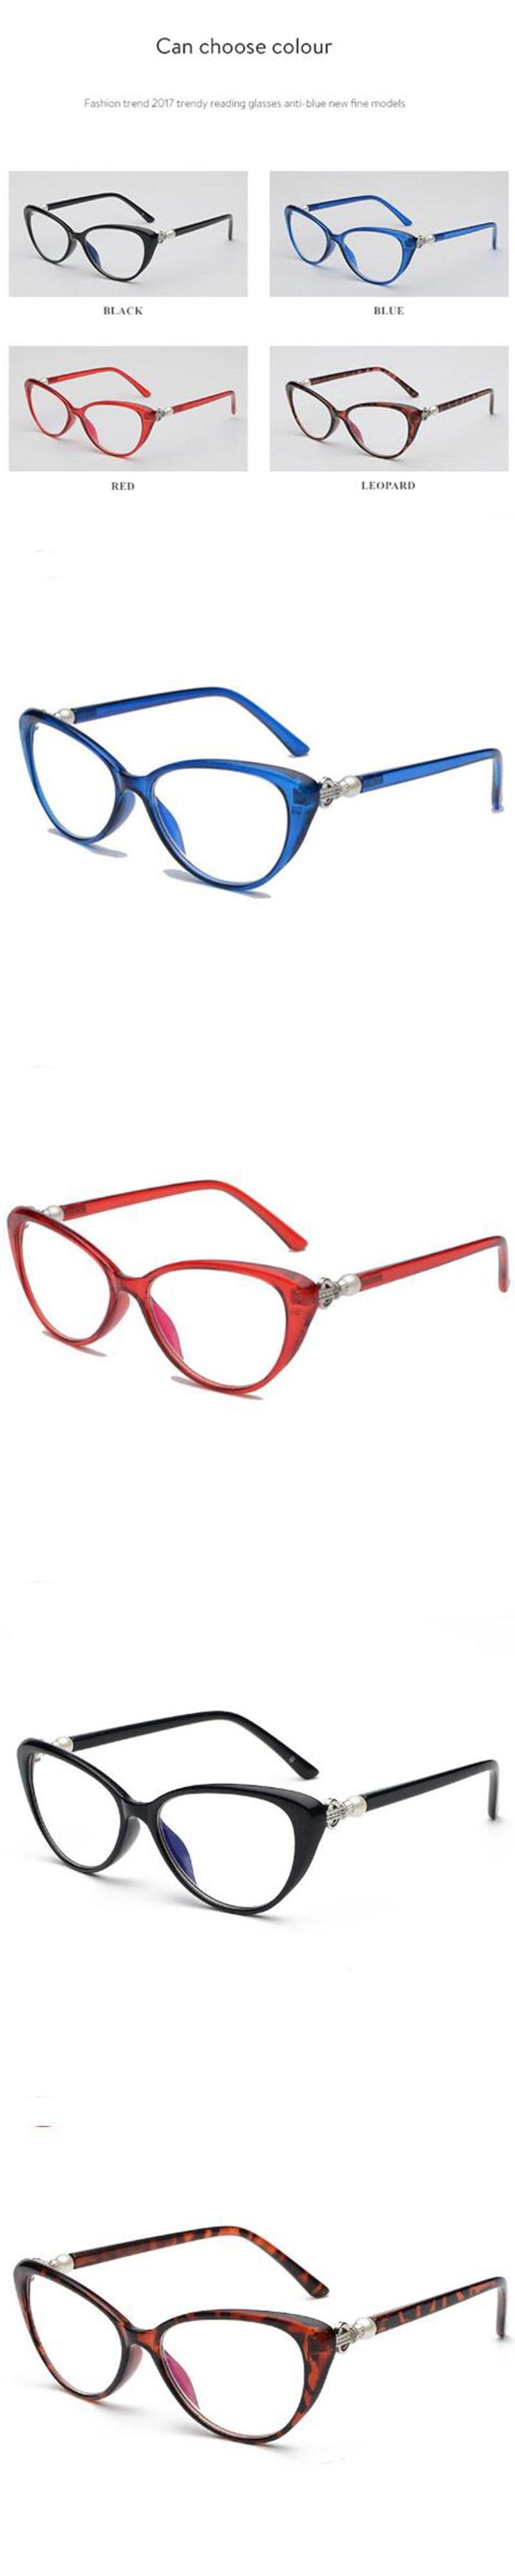 Fashion Men Women Readers Reading Glasses Plastic Unbreakable Reading Glasses with Diopter +1.0 +1.5 +2.0 +2.5 +3.0 KHC101-120